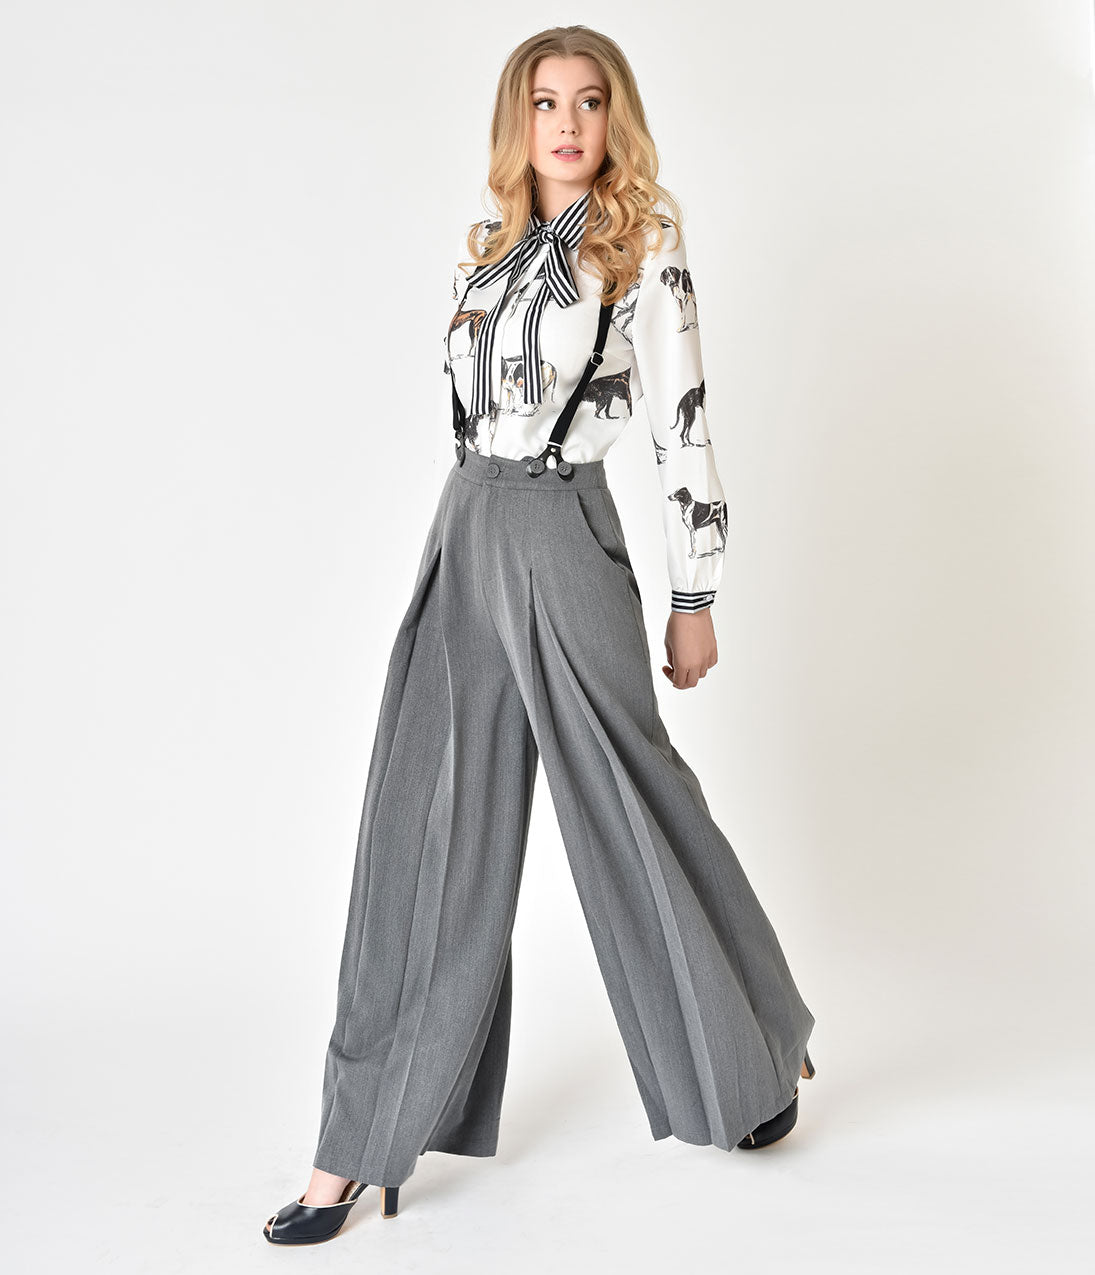 1920s Style Women's Pants, Trousers, Knickers, Tuxedo Voodoo Vixen 1940S Style Grey Khloe Suspender Trousers $40.00 AT vintagedancer.com